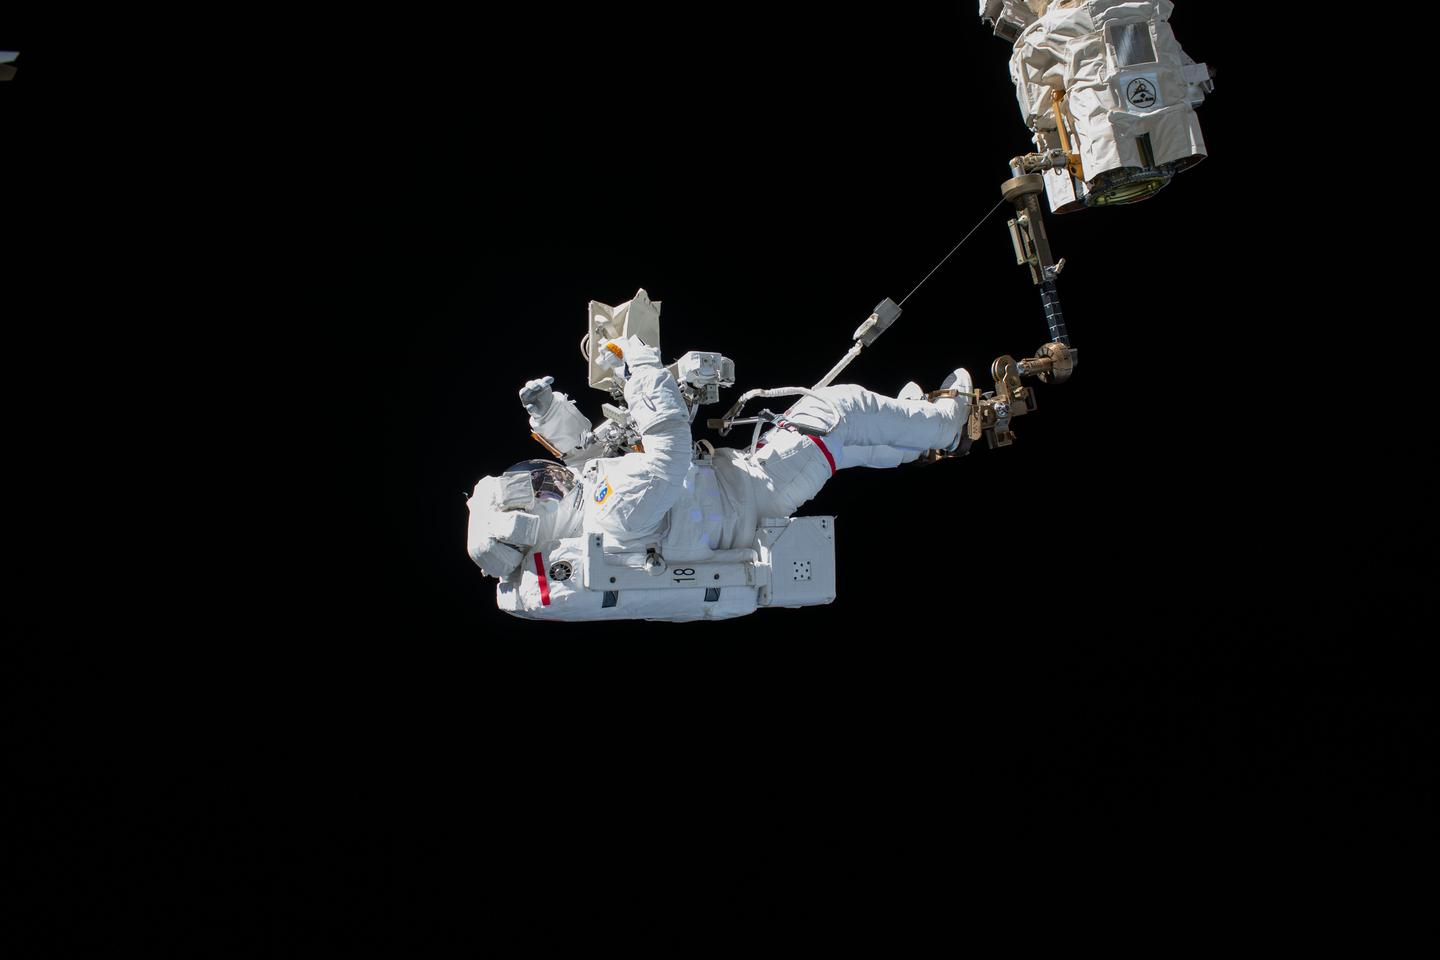 A new study has found that microgravity can affect the cells lining the walls of the intestines